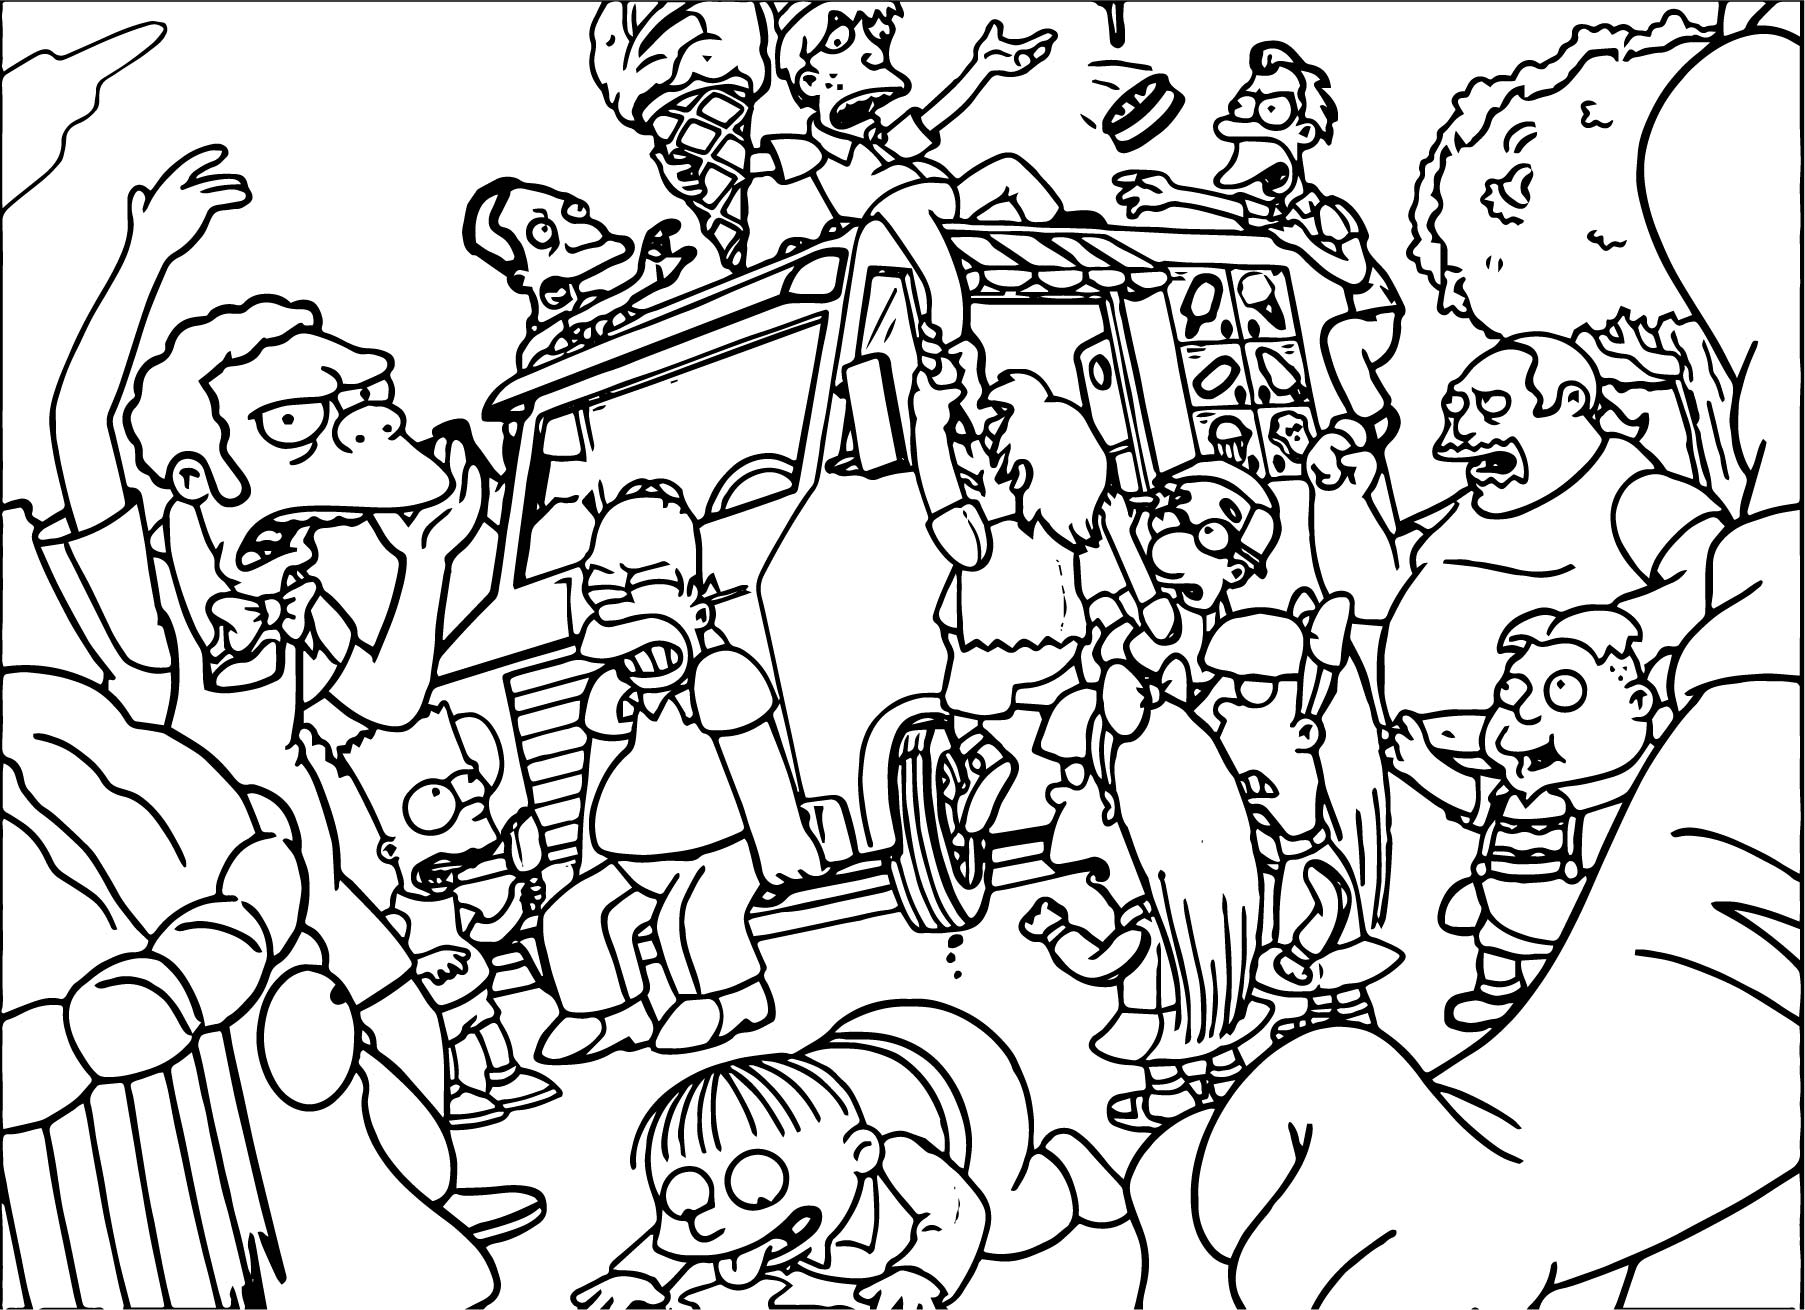 Ice Cream Riot The Simpsons Coloring Page | Wecoloringpage